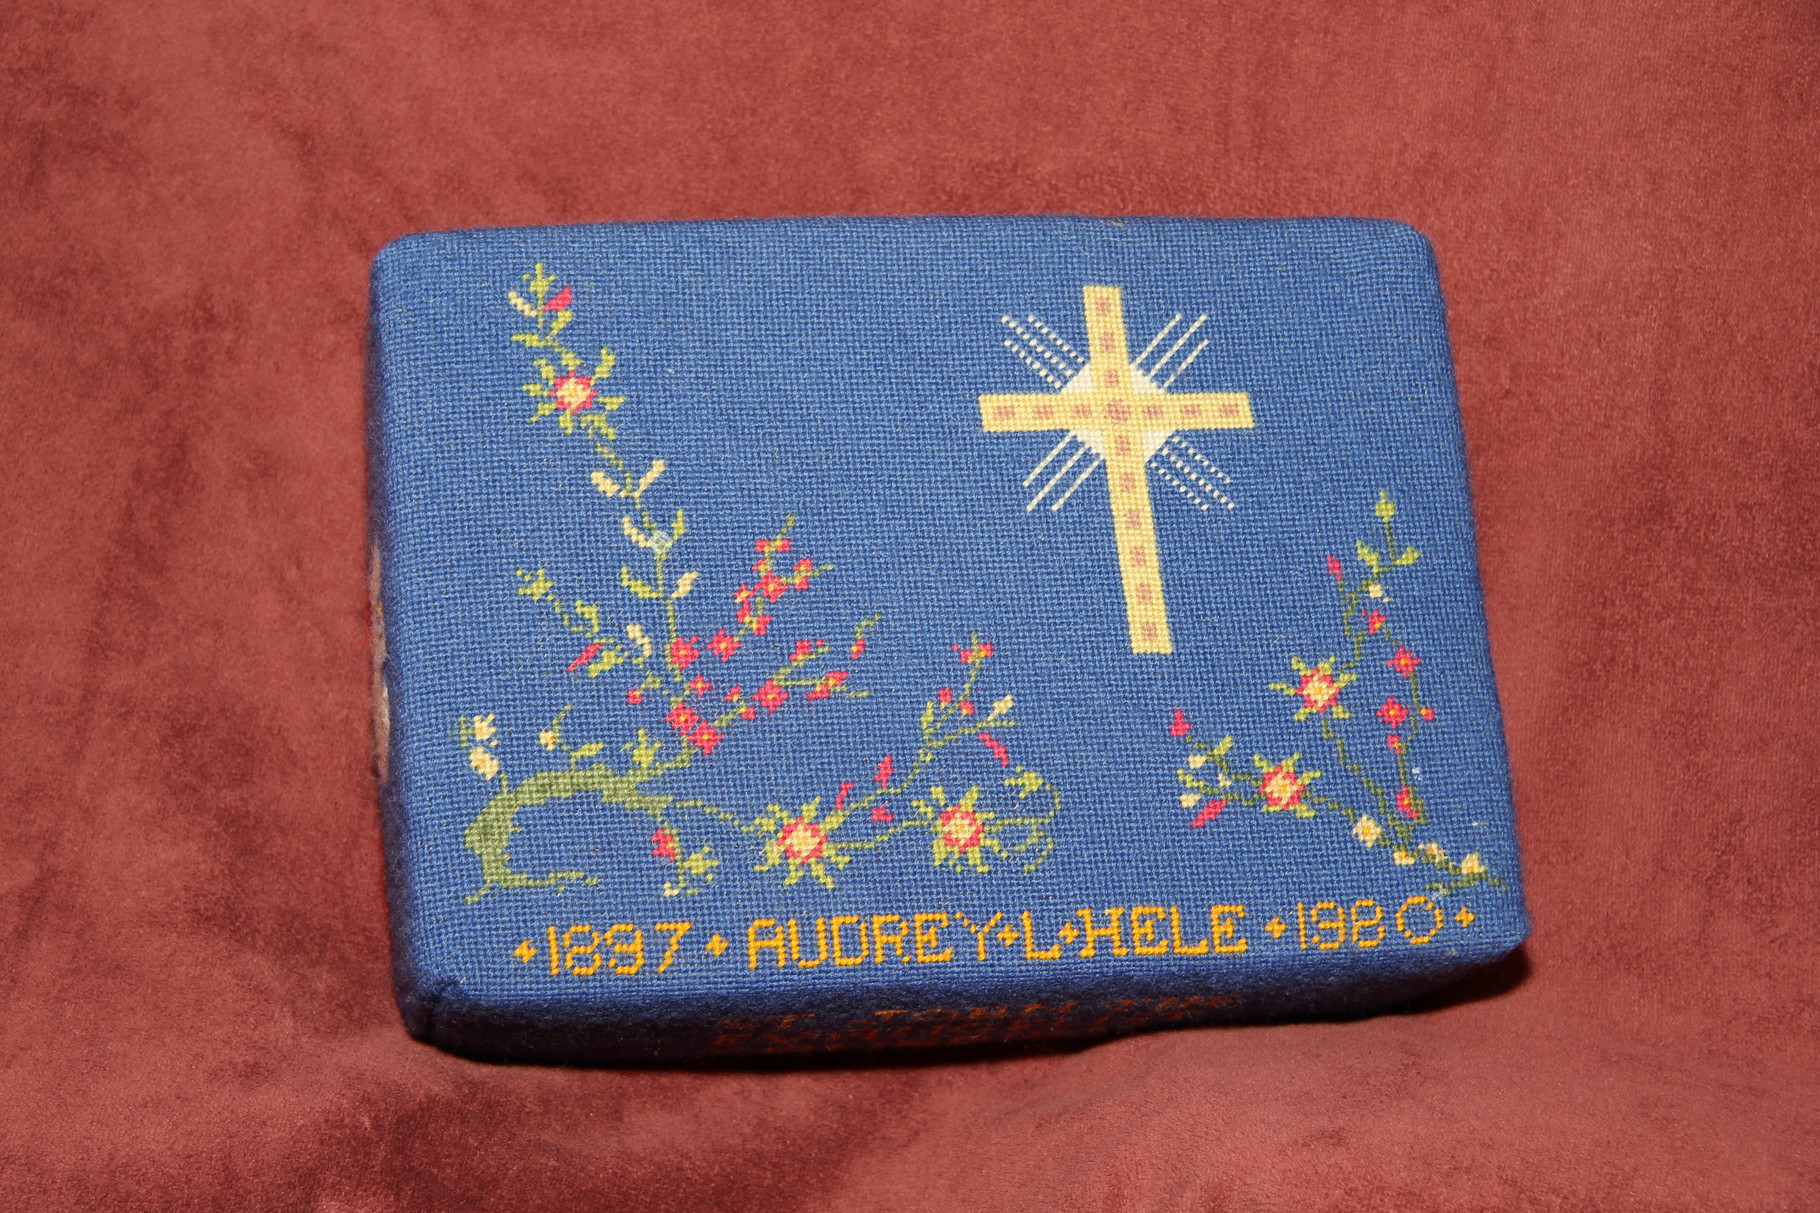 35.  Cross with floral decorations in memory of Audrey L. Hele (1887—1980) – donated and worked by Jill Salkeld-Green